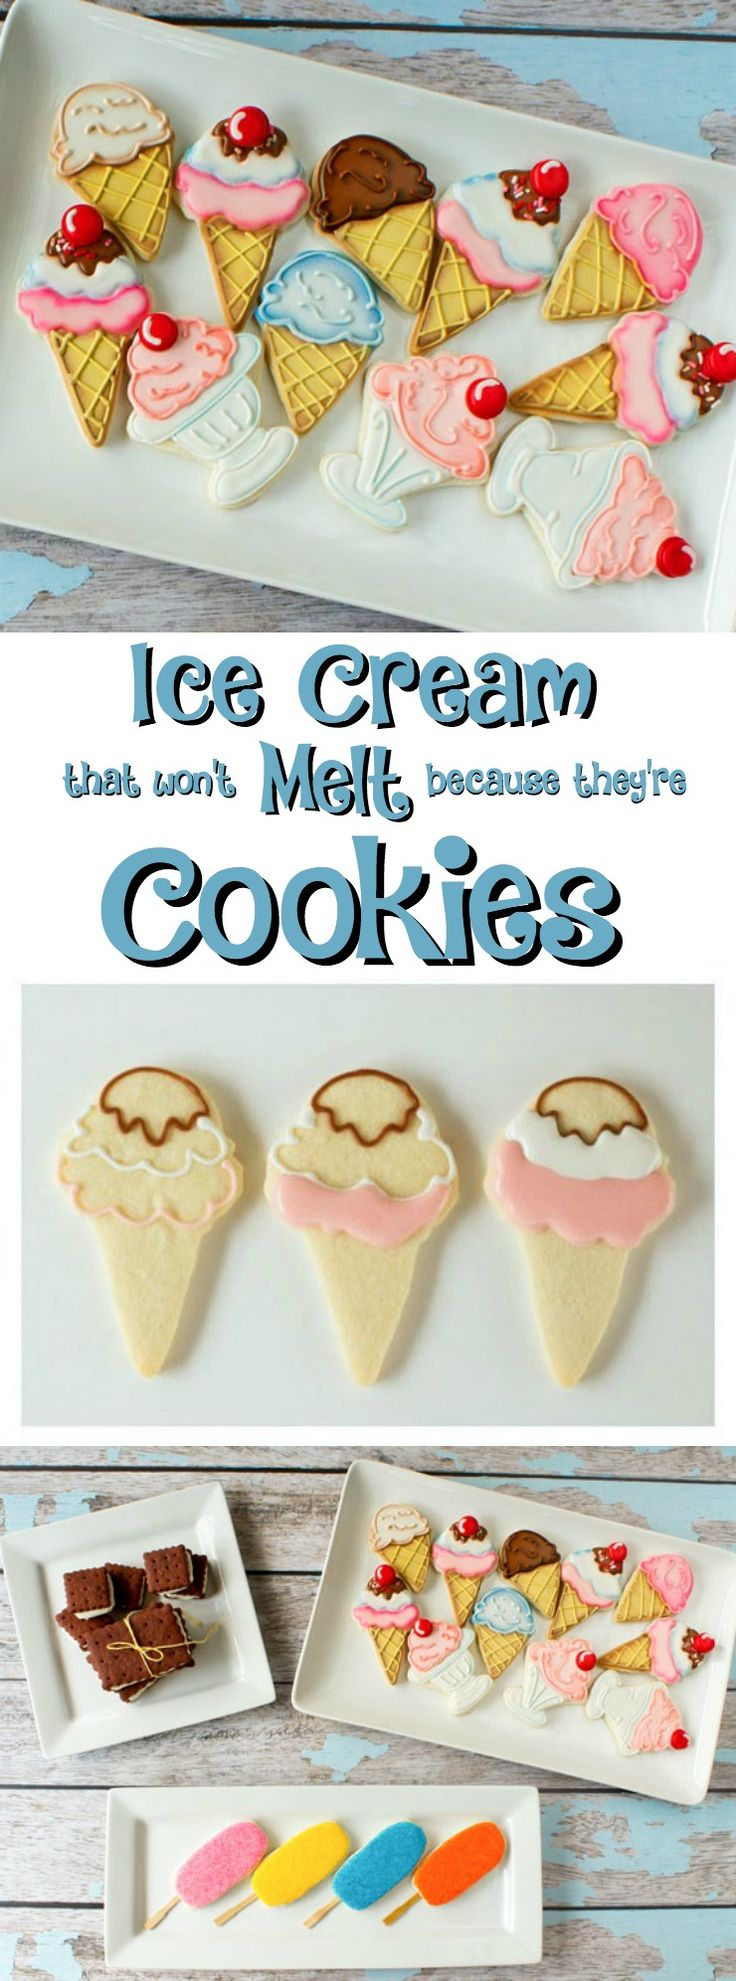 Ice Cream Cookies via www.thebearfootbaker.com